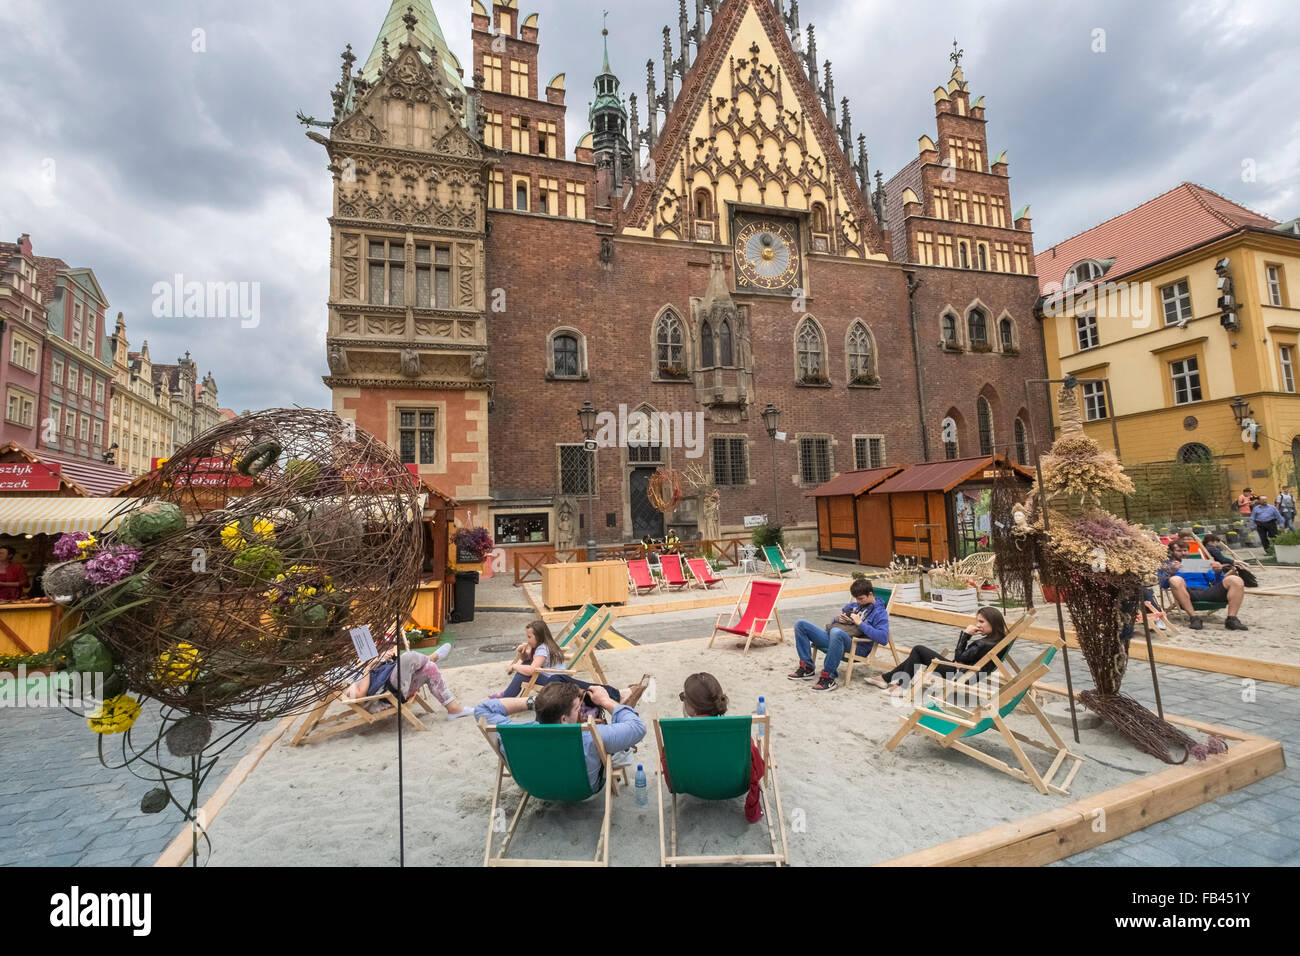 Tourists sitting outside East side of Wroclaw Gothic Town Hall, Market Square, Old Town, Wroclaw, Poland - Stock Image